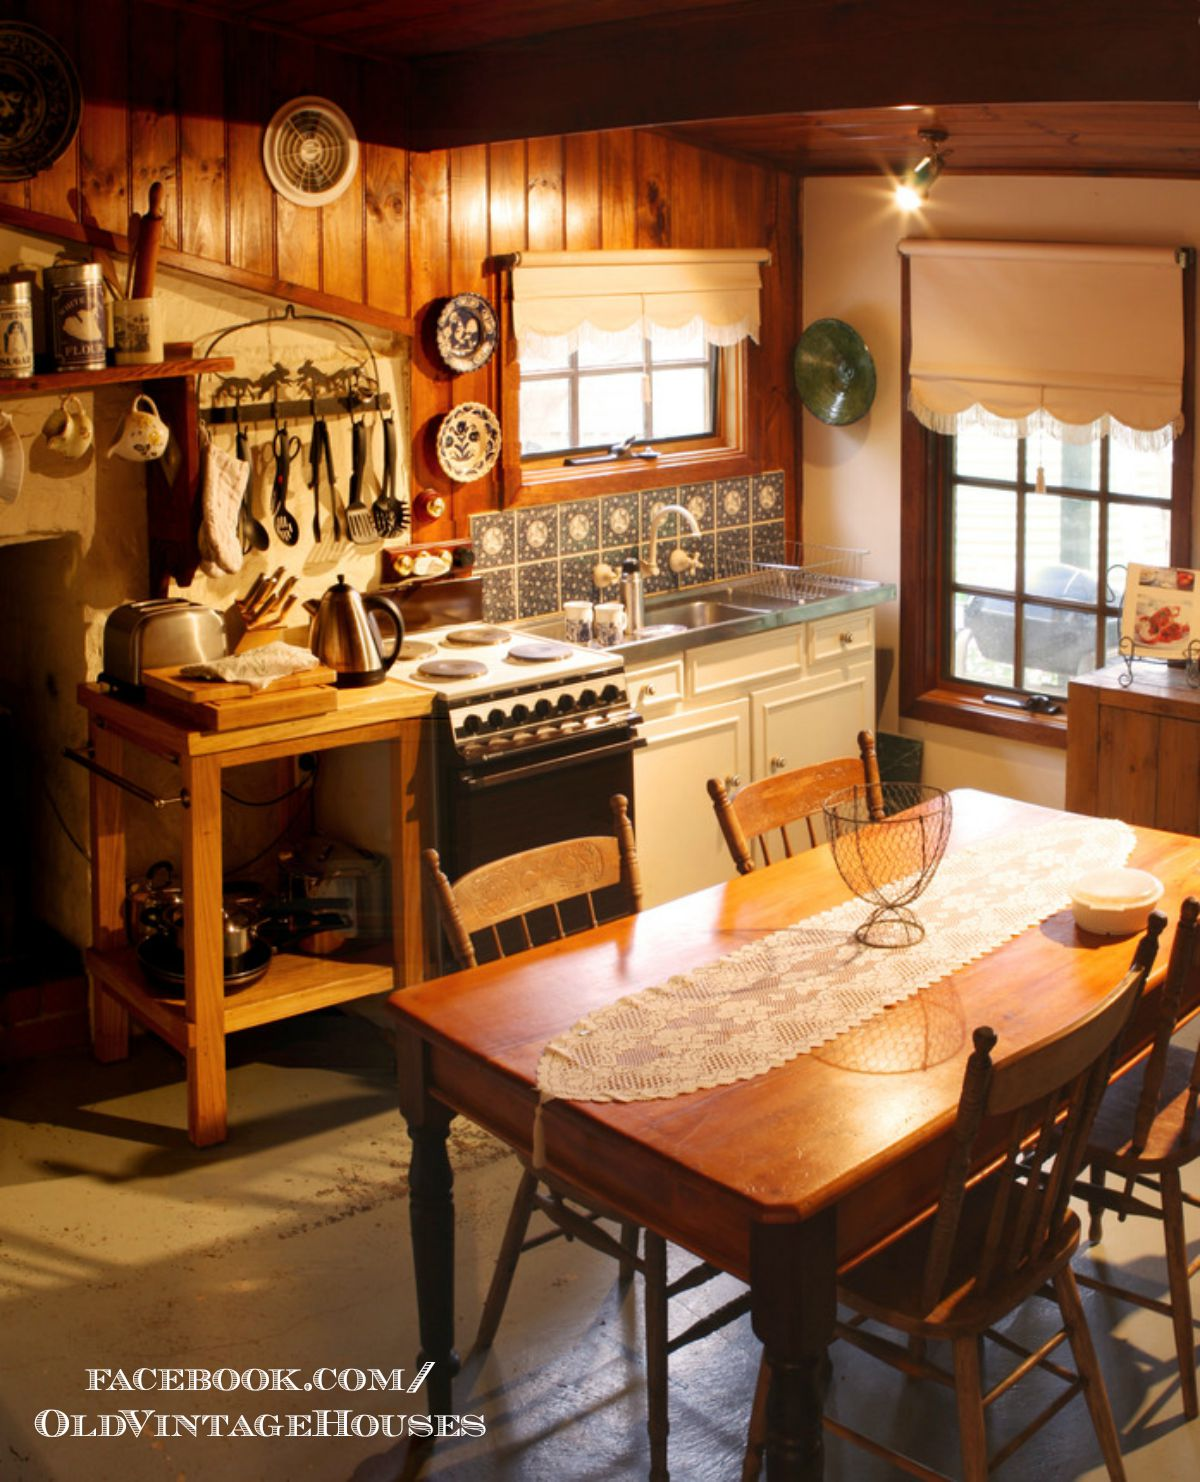 Old Country Kitchen Cabinets: A Quick Way To Find Beautiful Old Homes For Sale In The